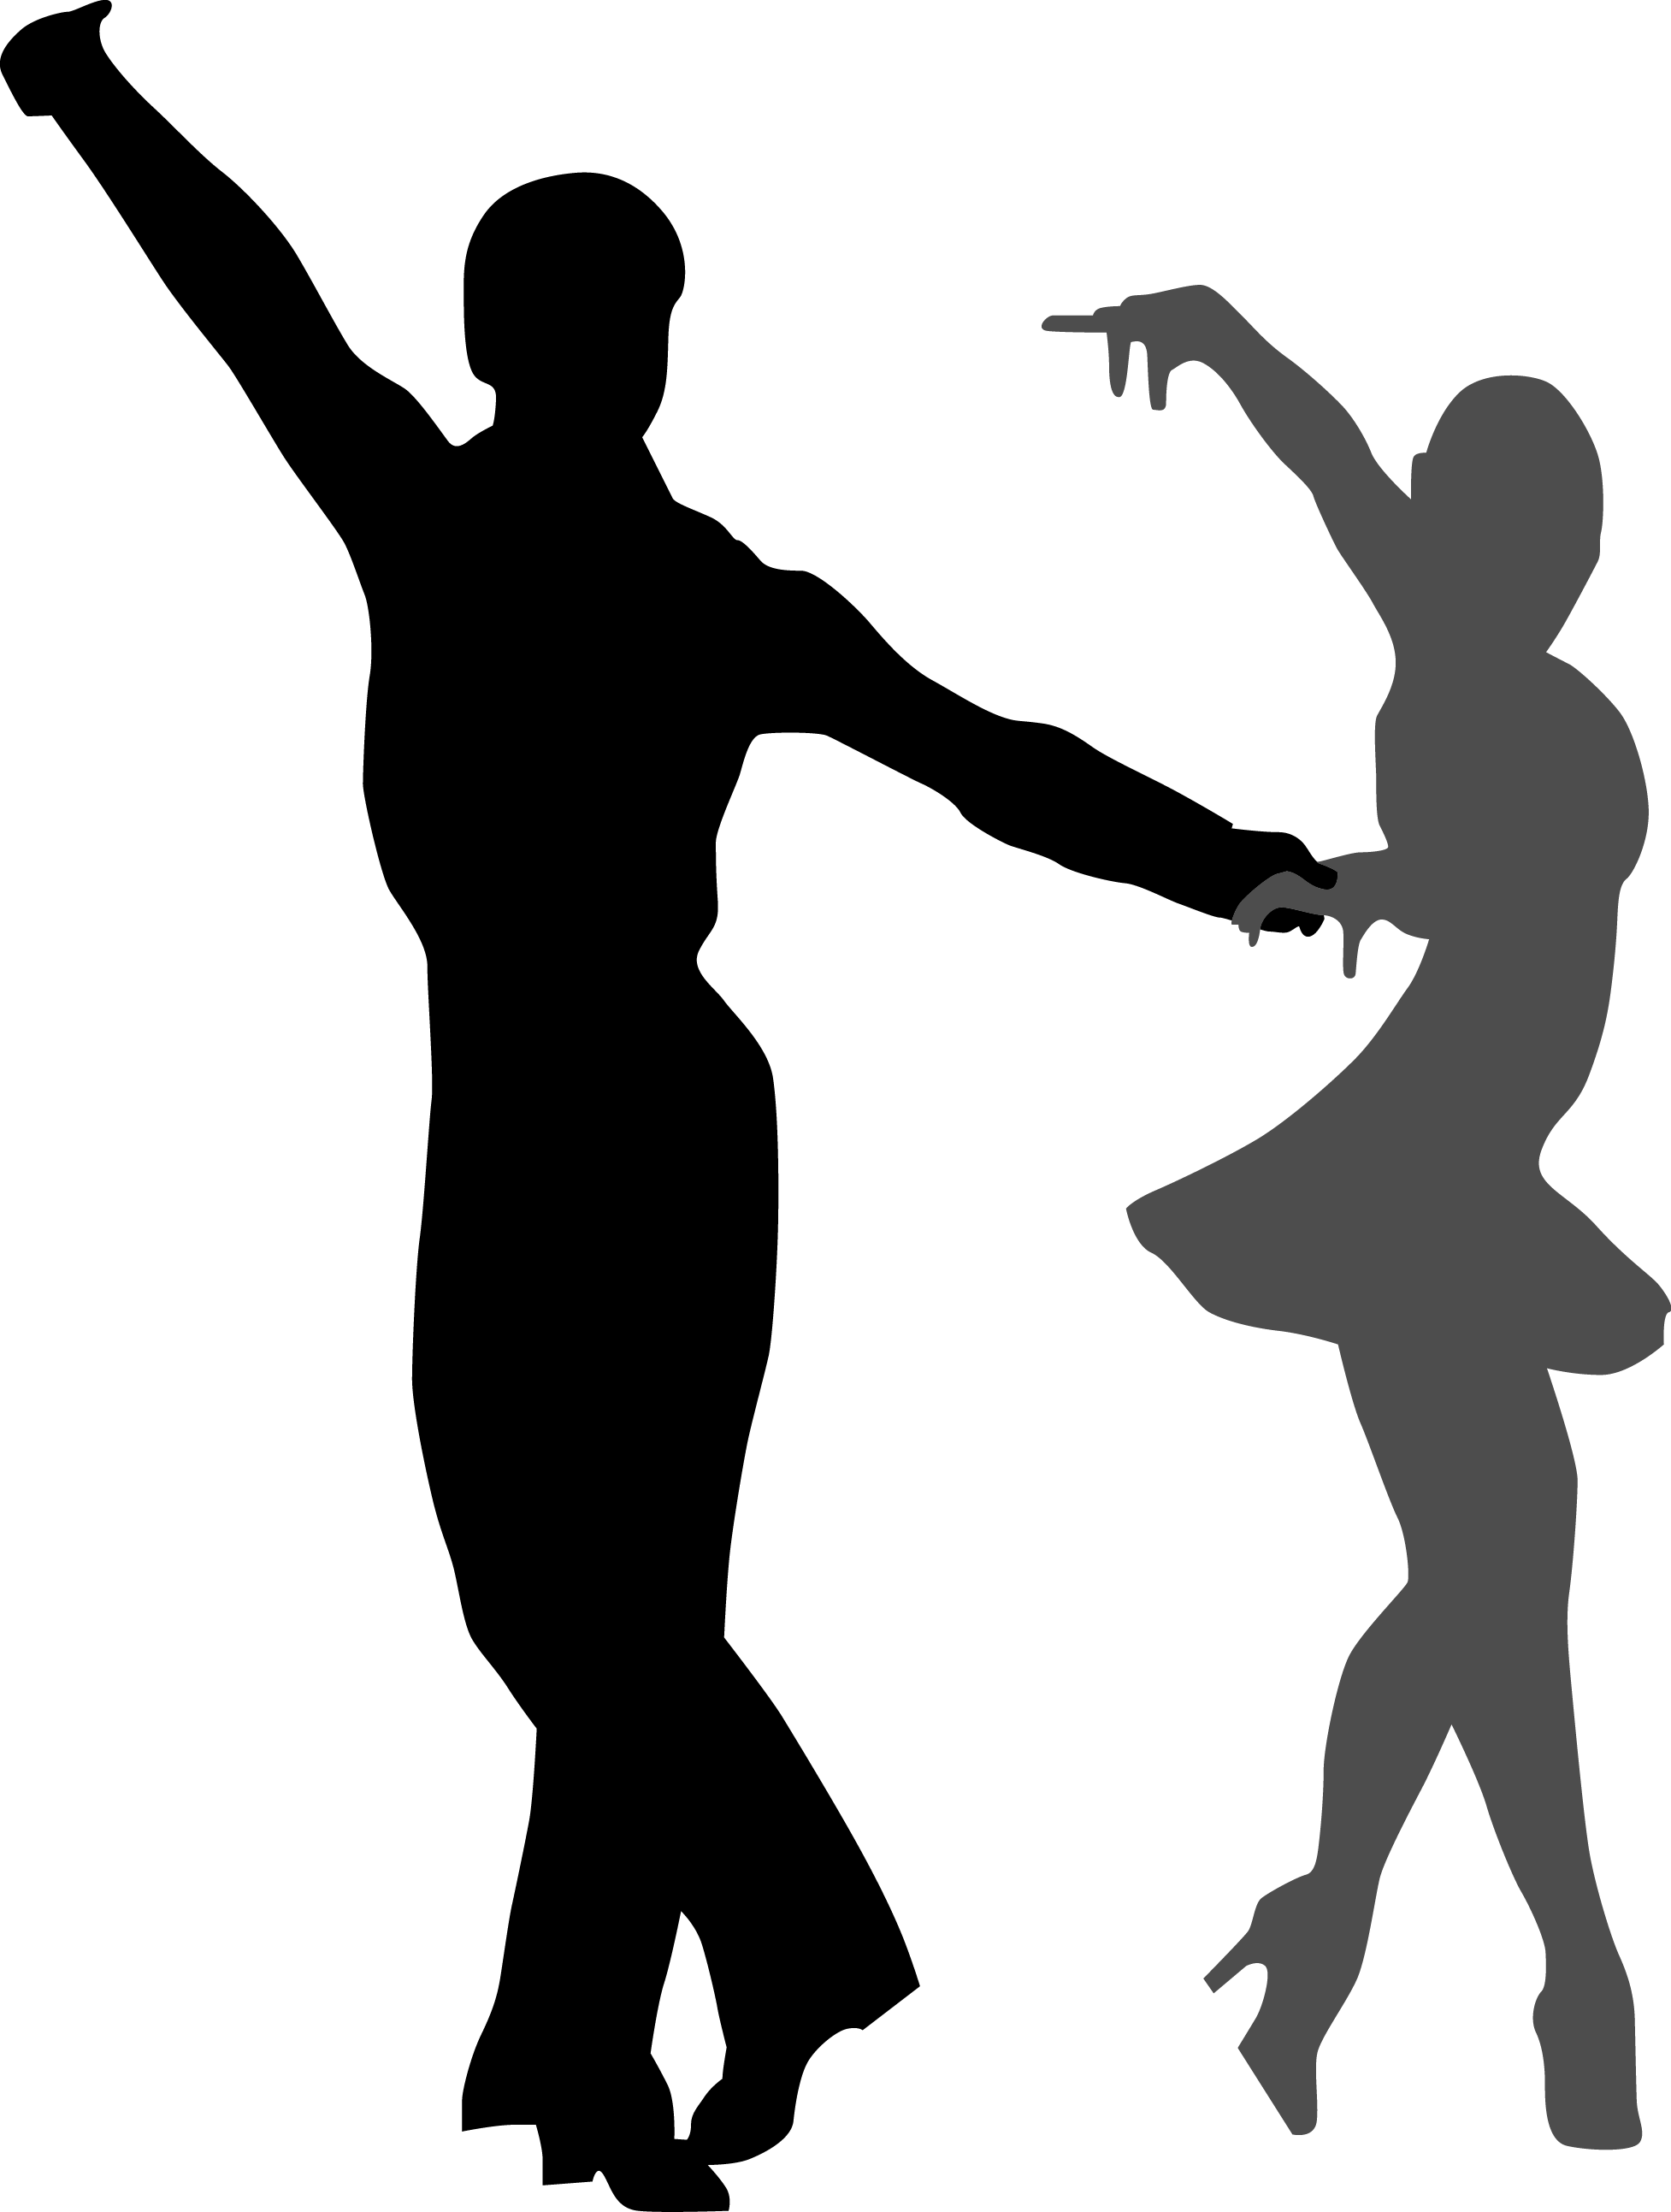 Ballroom Dance Dancing Material For Men And.